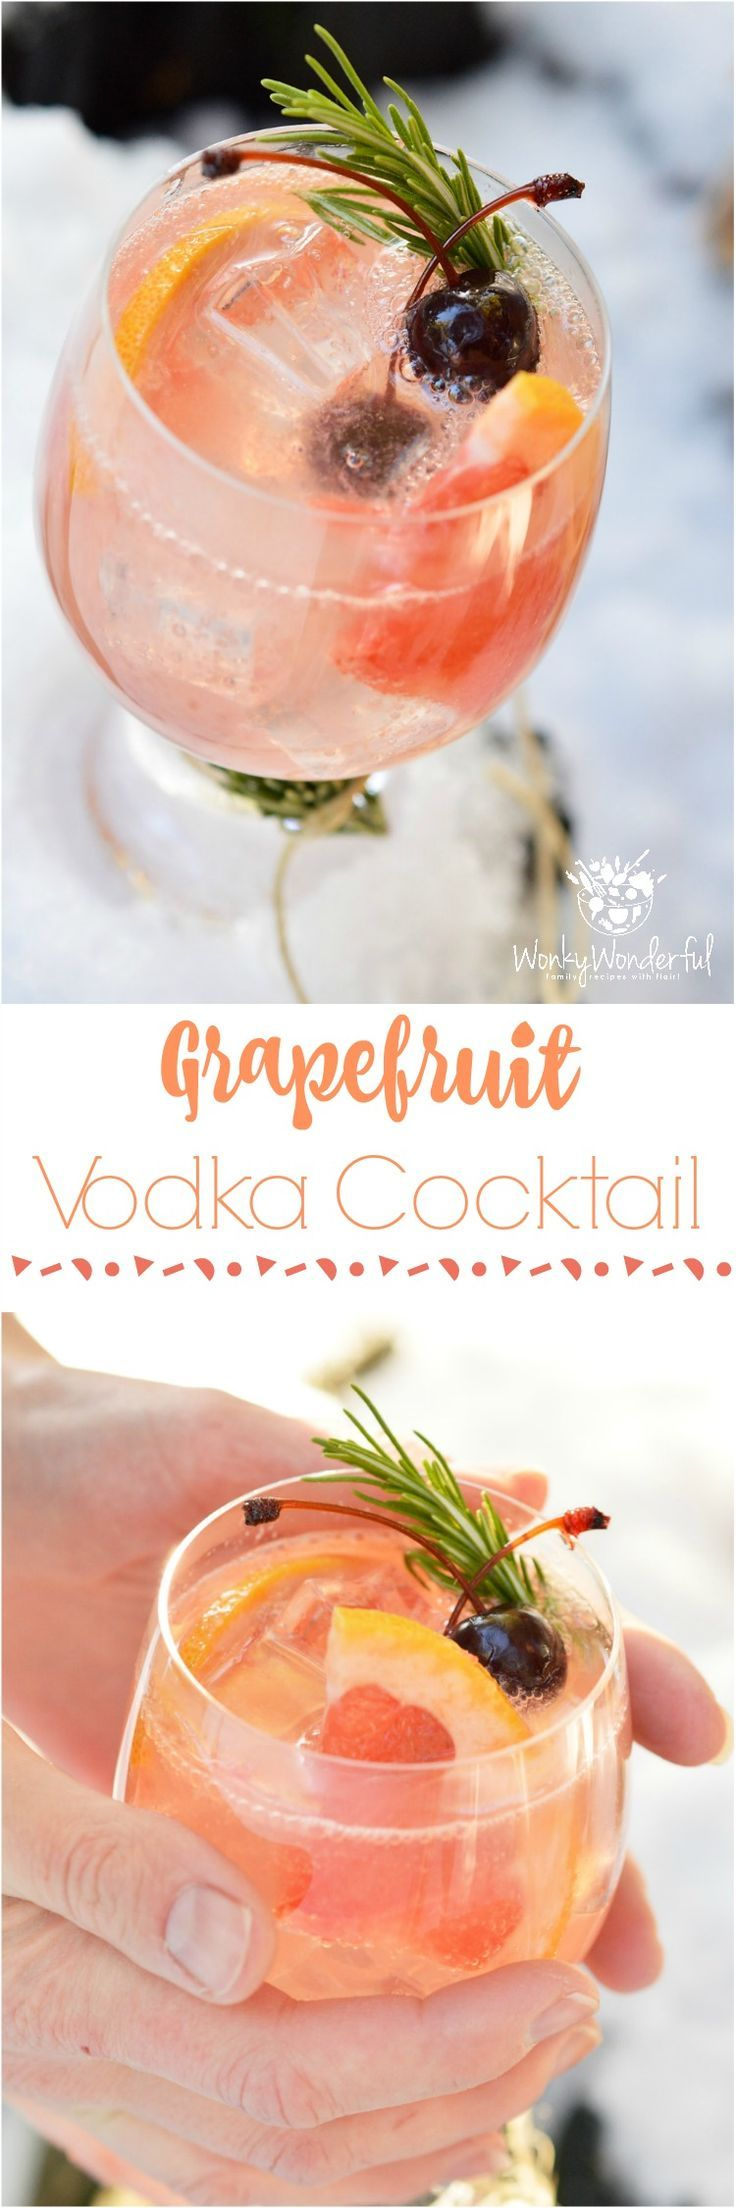 Ice, 2 ounces Vodka, Juice of 1/2 a Grapefruit, 7Up. GARNISH: Grapefruit Slices, Cherries, Rosemary INSTRUCTIONS: Fill glass with ice, vodka and grapefruit juice. Garnish with grapefruit slices, cherries and rosemary sprigs. Fill glass with 7UP.